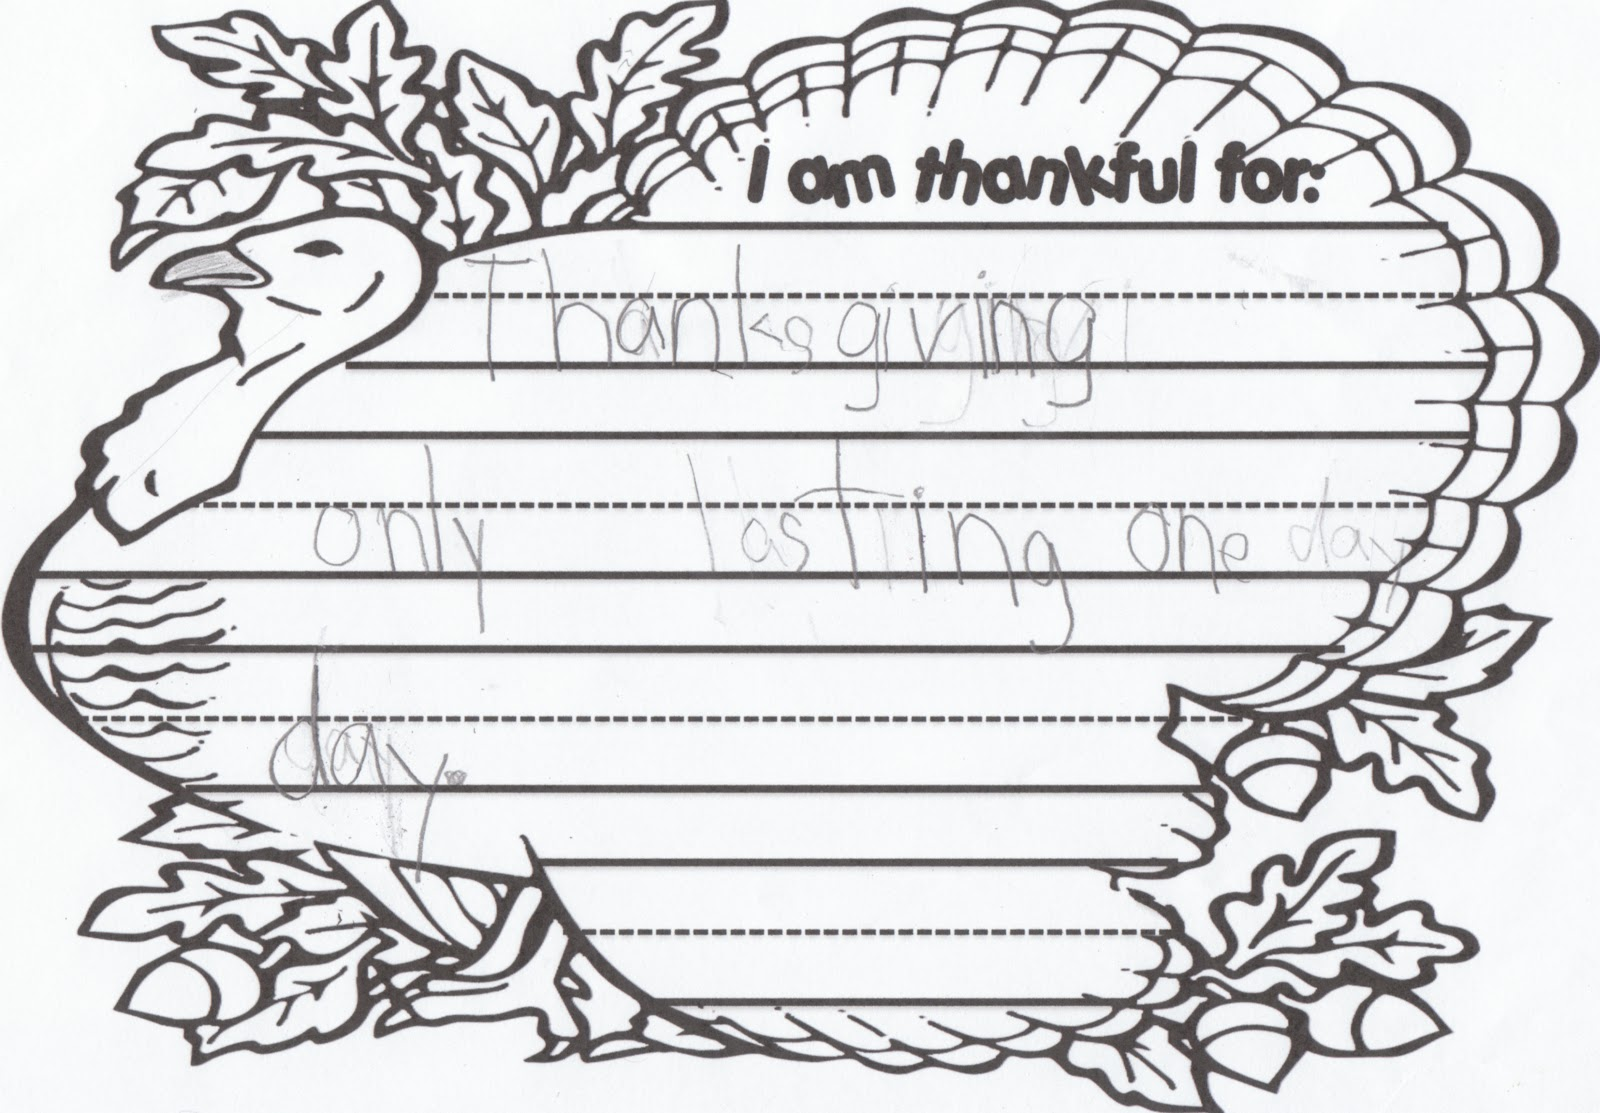 thanksgiving turkey essay Results 1 - 20 of 15924 everything you need to teach an effective persuasive writing unit is included with this pack i use the book i wanna iguana by karen kaufman orloff as a springboard for this unit (this is not a novel study on this book) find this pin and more on school by cunnina essay writing services offer by essay.